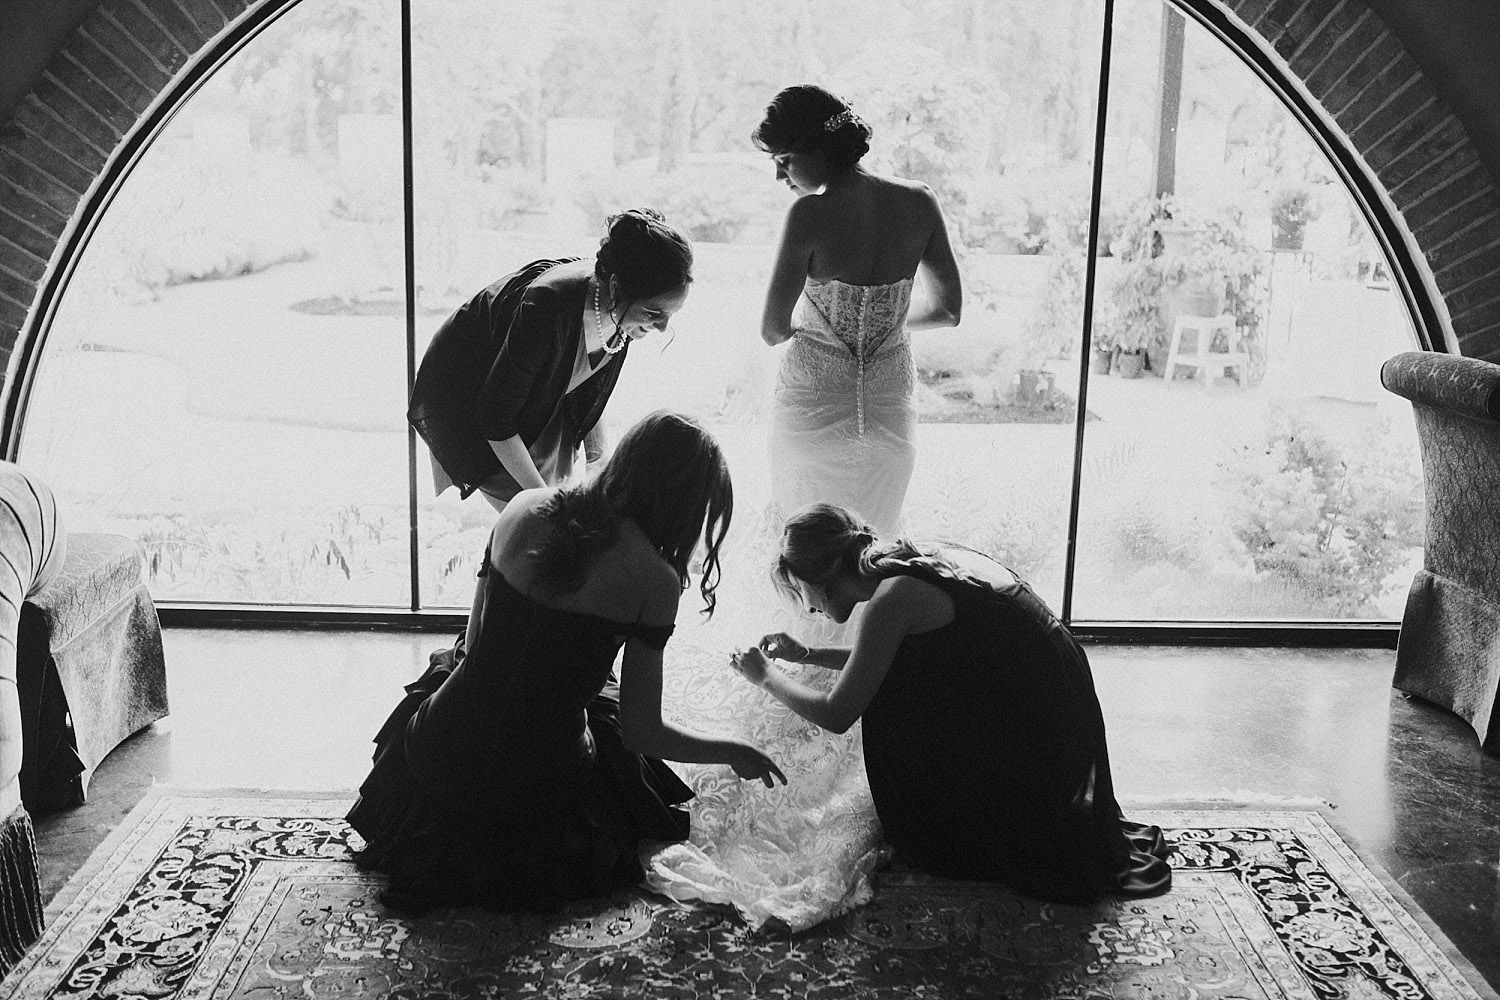 bridesmaids putting on the brides dress in a black and white photo